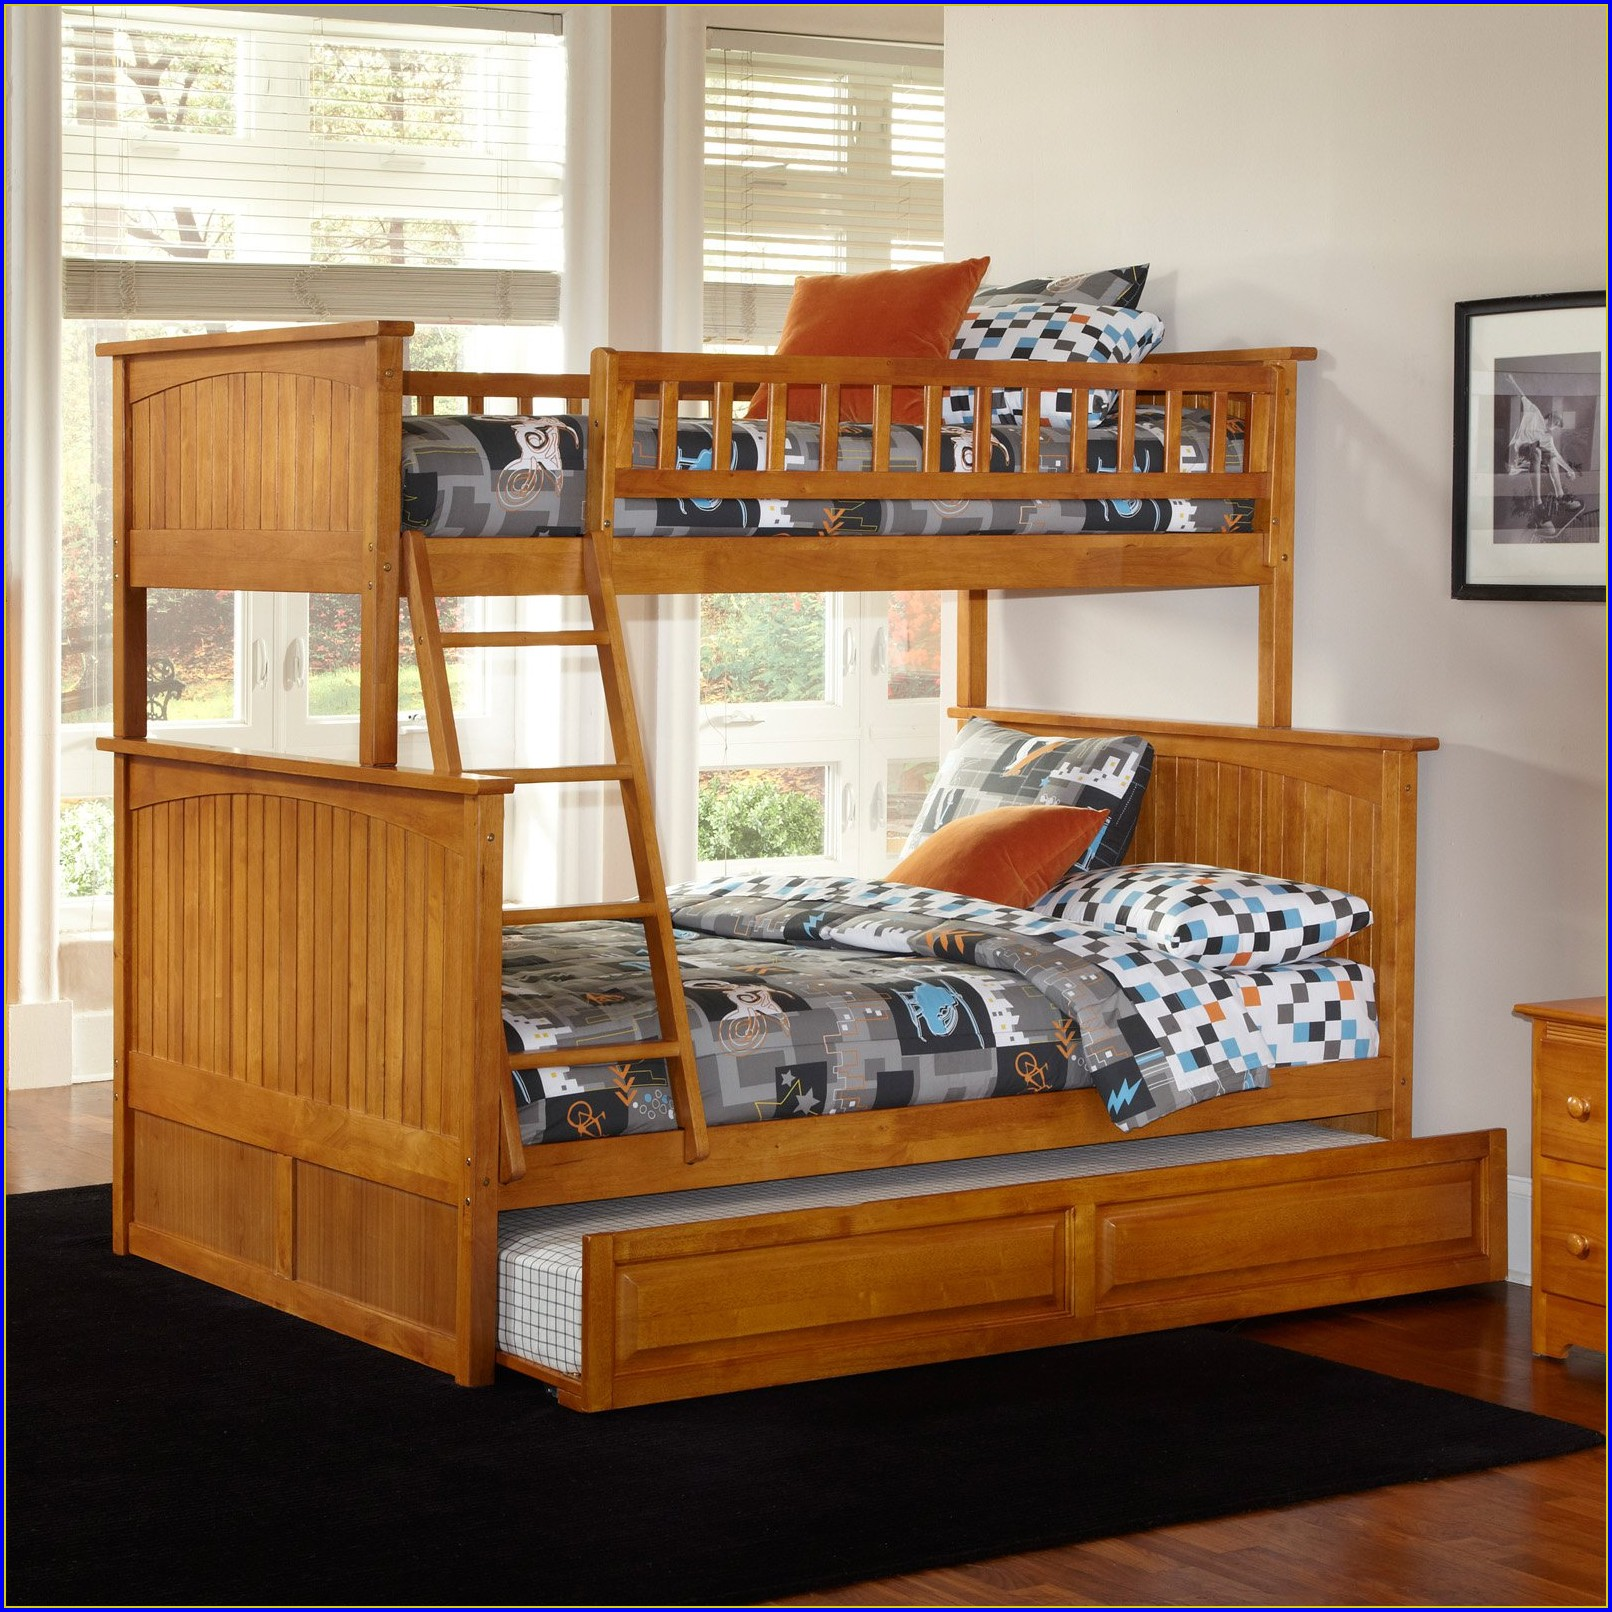 Upholstered King Bed With Drawers